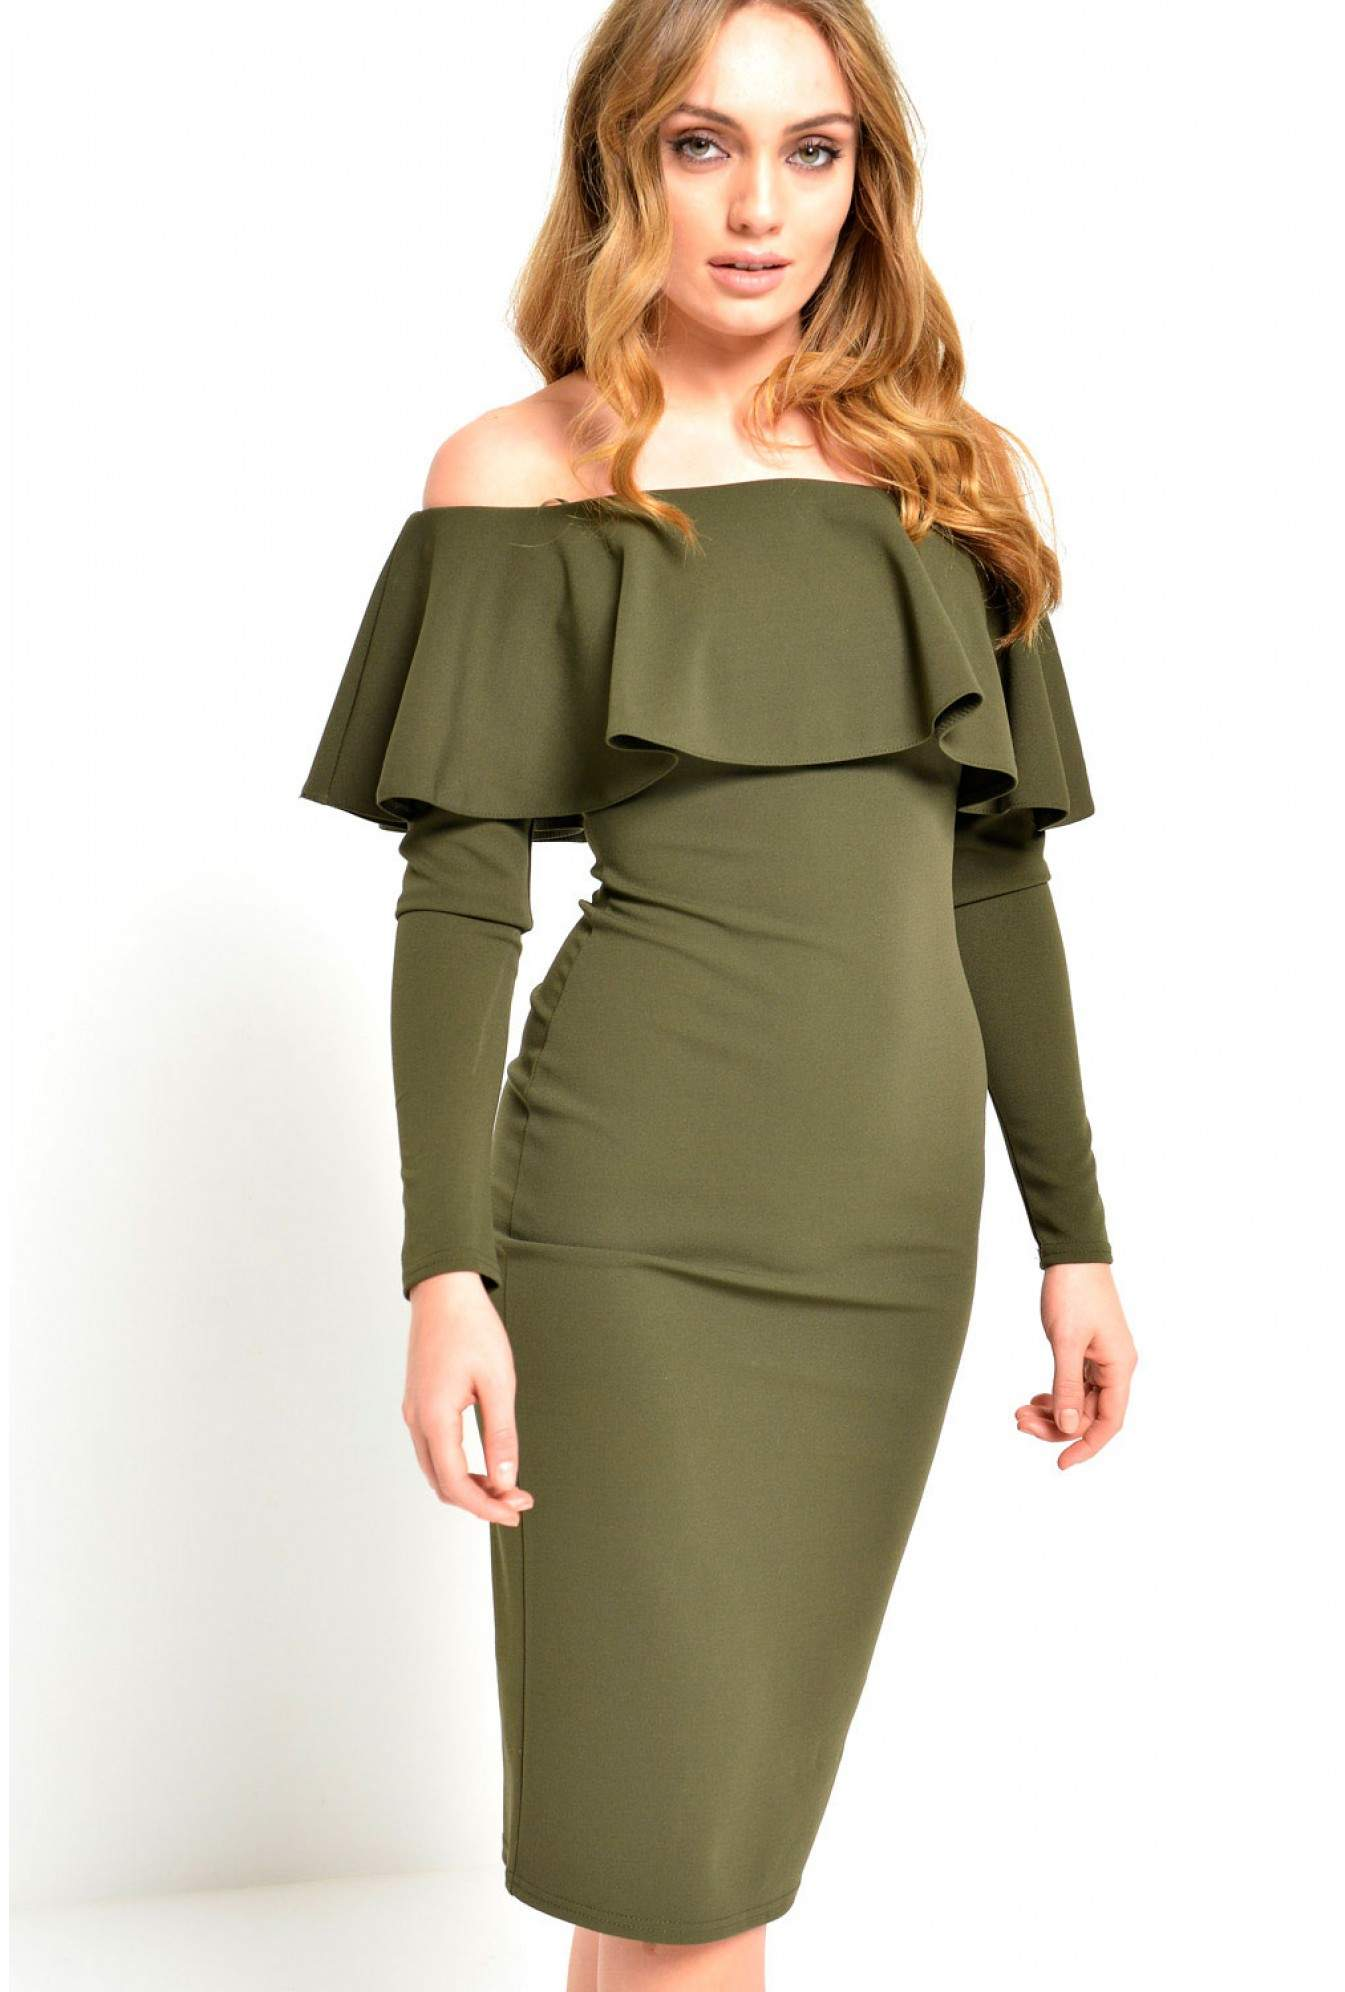 907e02761fc More Views. Luella Off Shoulder Long Sleeve Dress in Khaki. Ad Lib